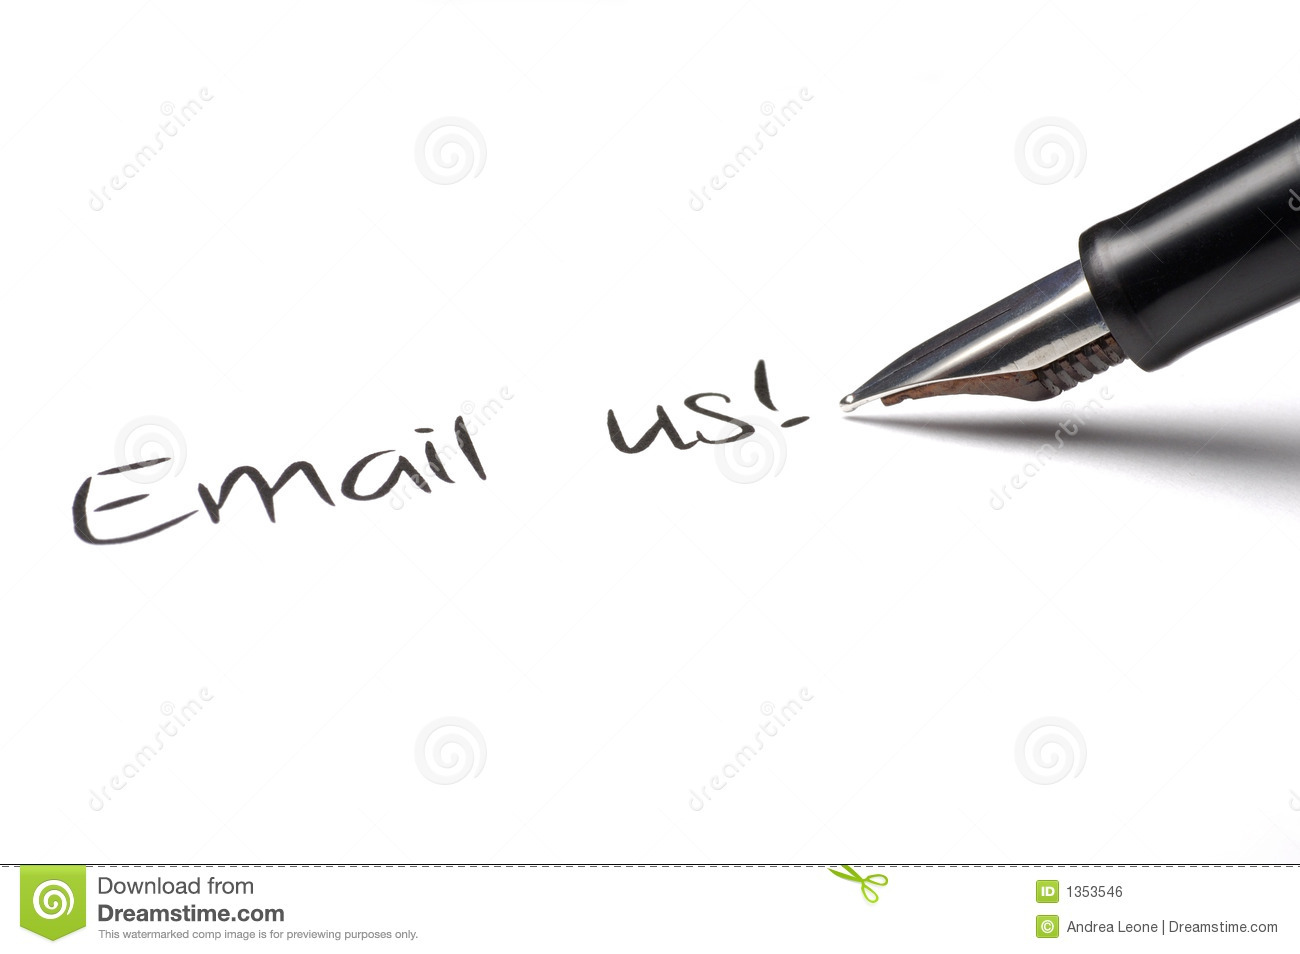 E-mail ons!